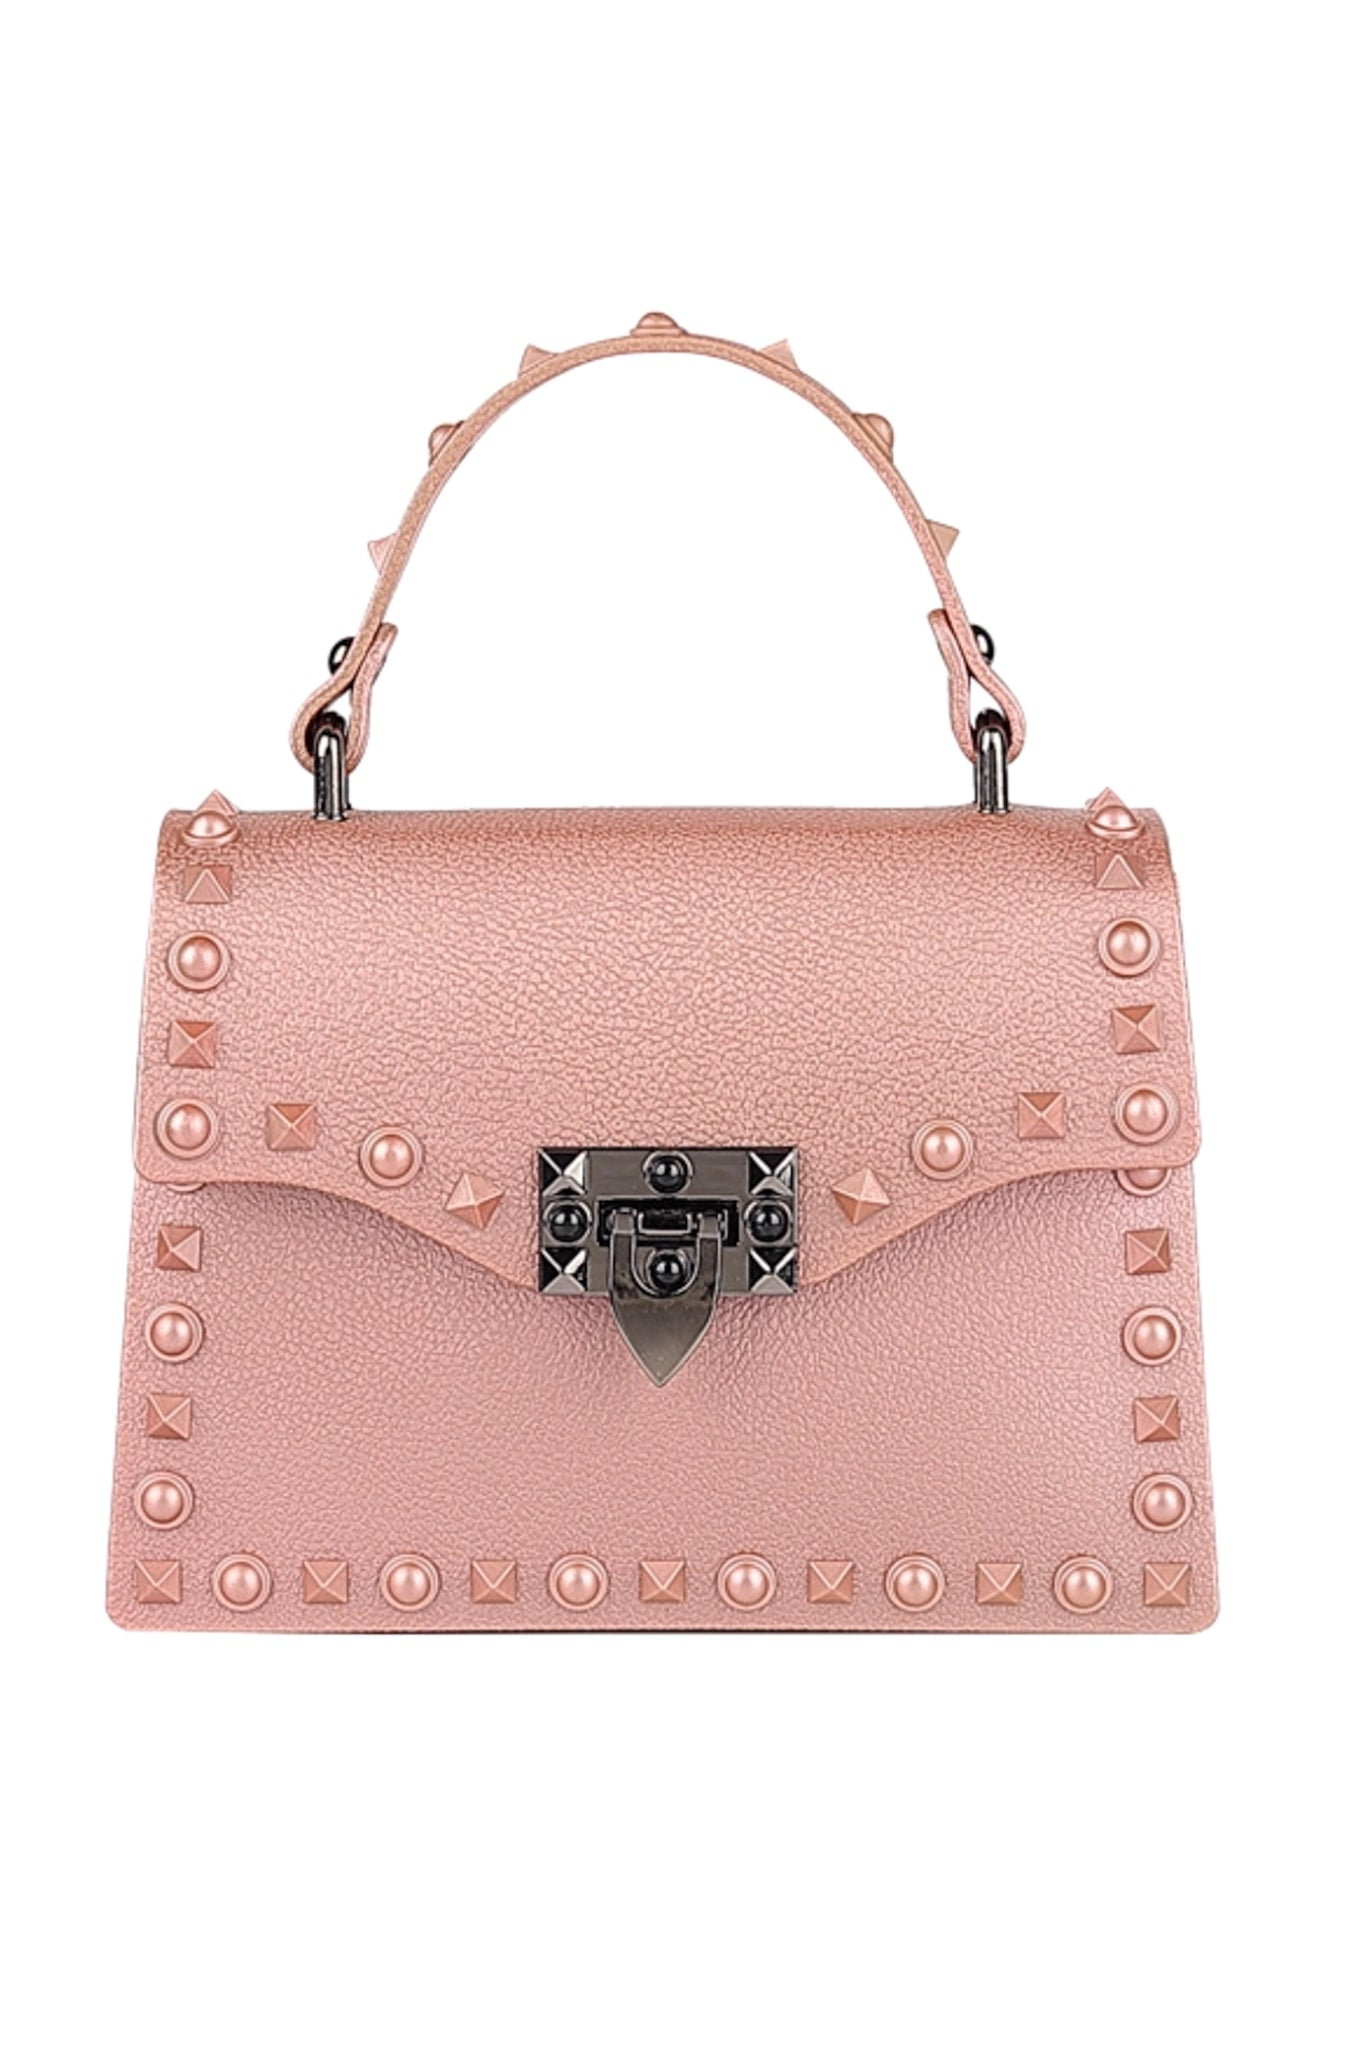 Rose Gold Rebel Rich Bag - Vegan